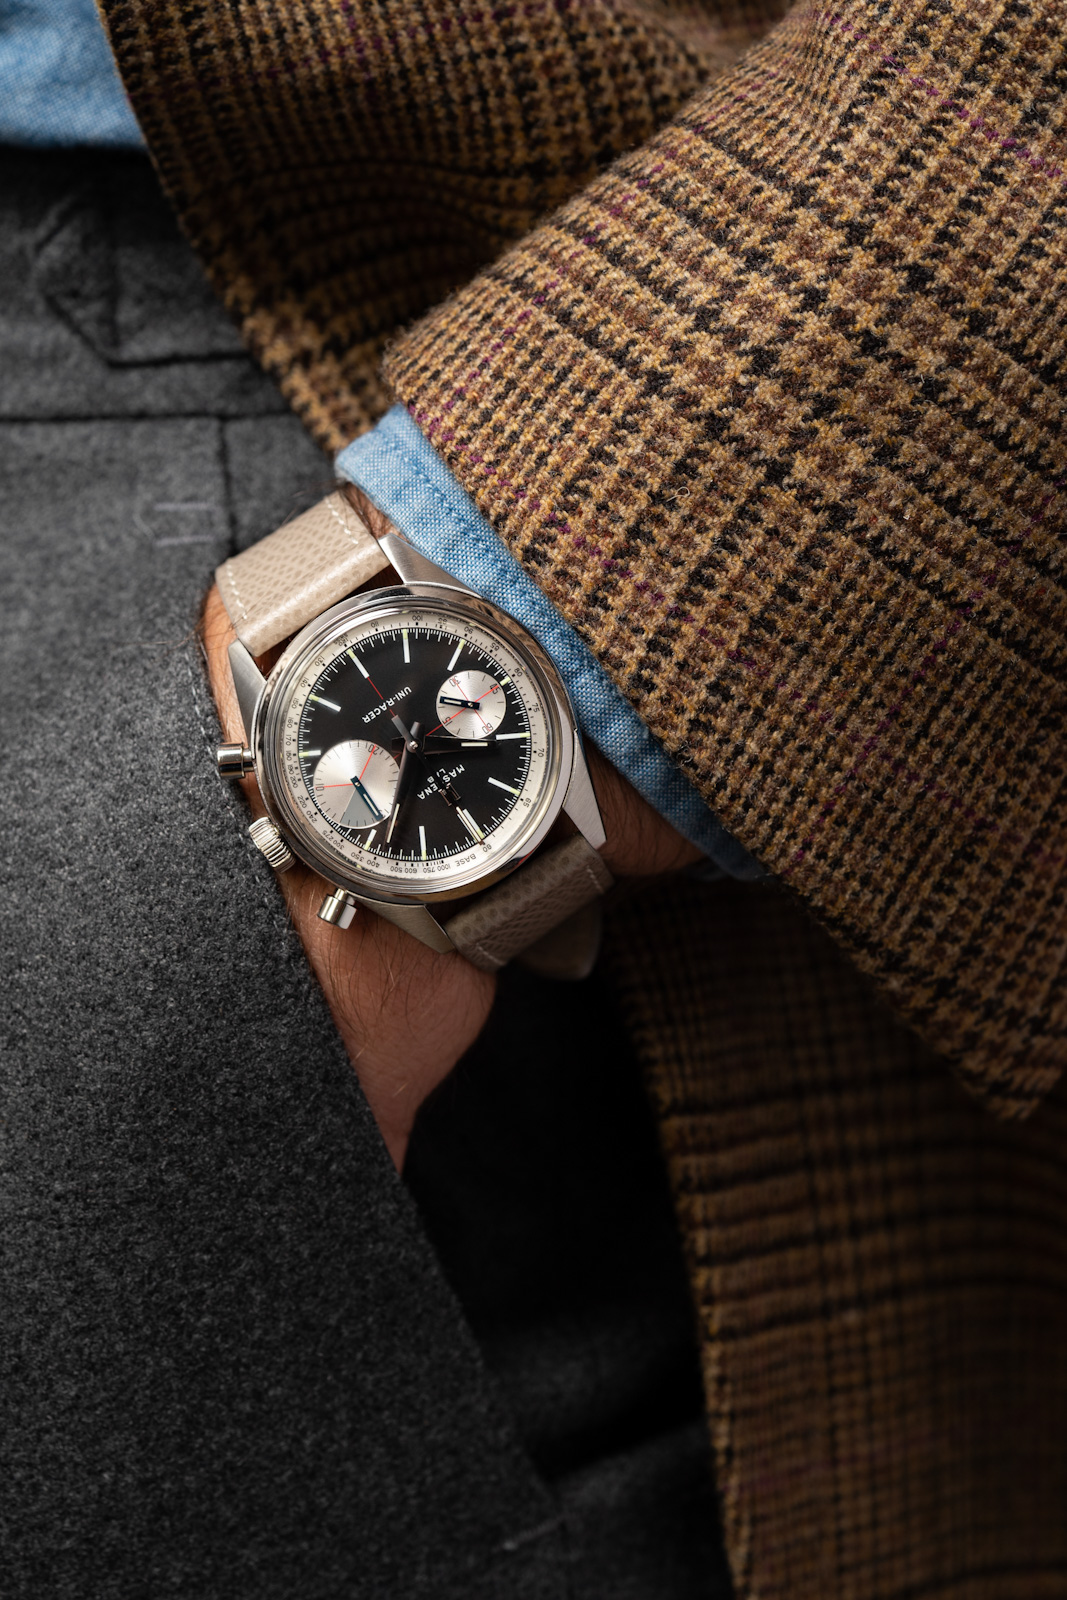 5 watches that use the Sellita SW510 chronograph movement, from $2000 – $4000USD